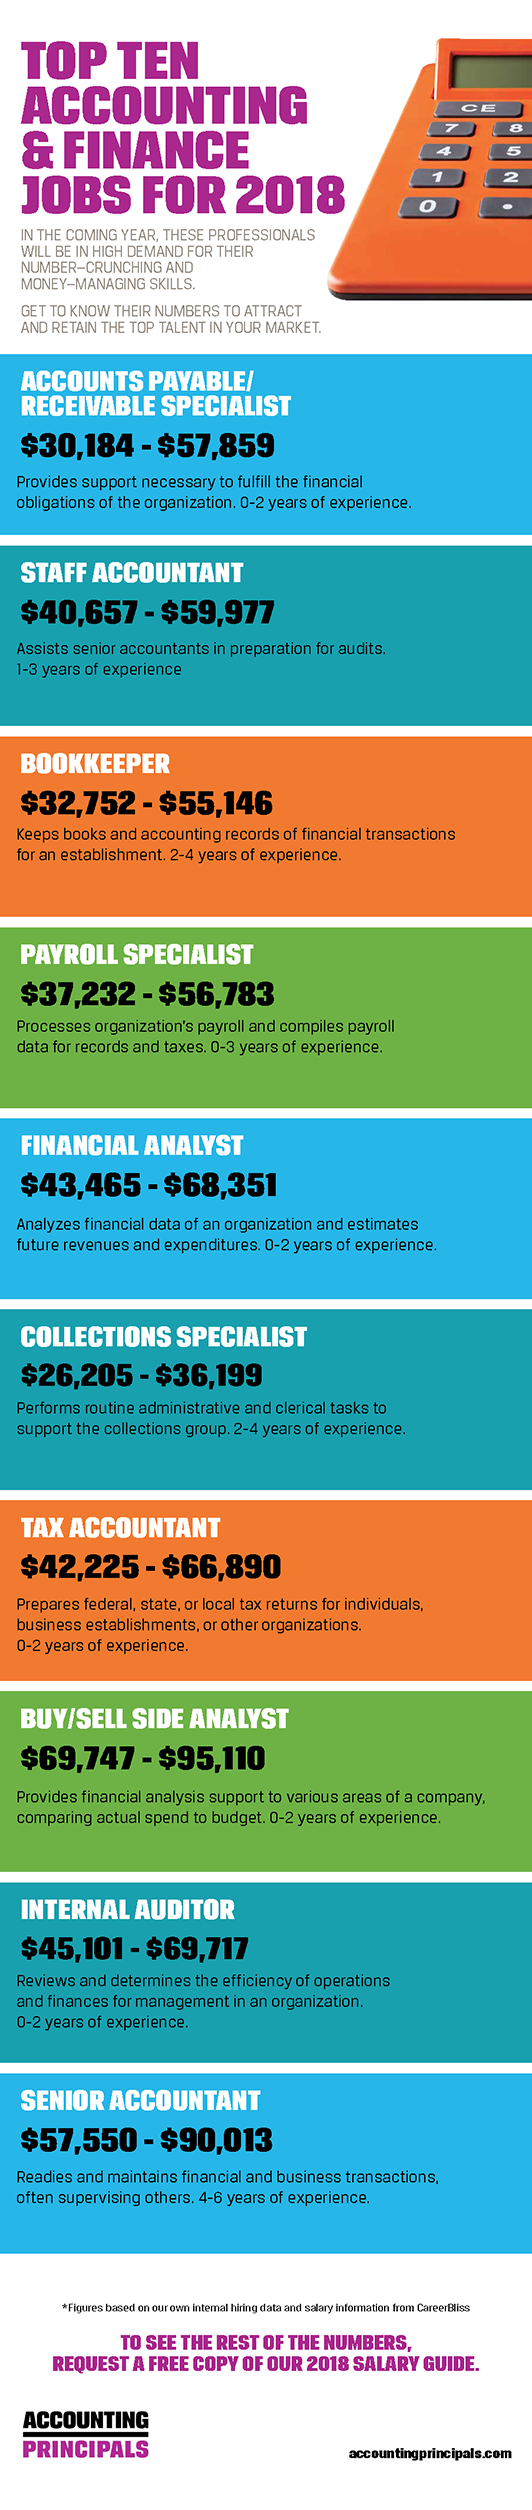 top accounting and finance jobs for 2018